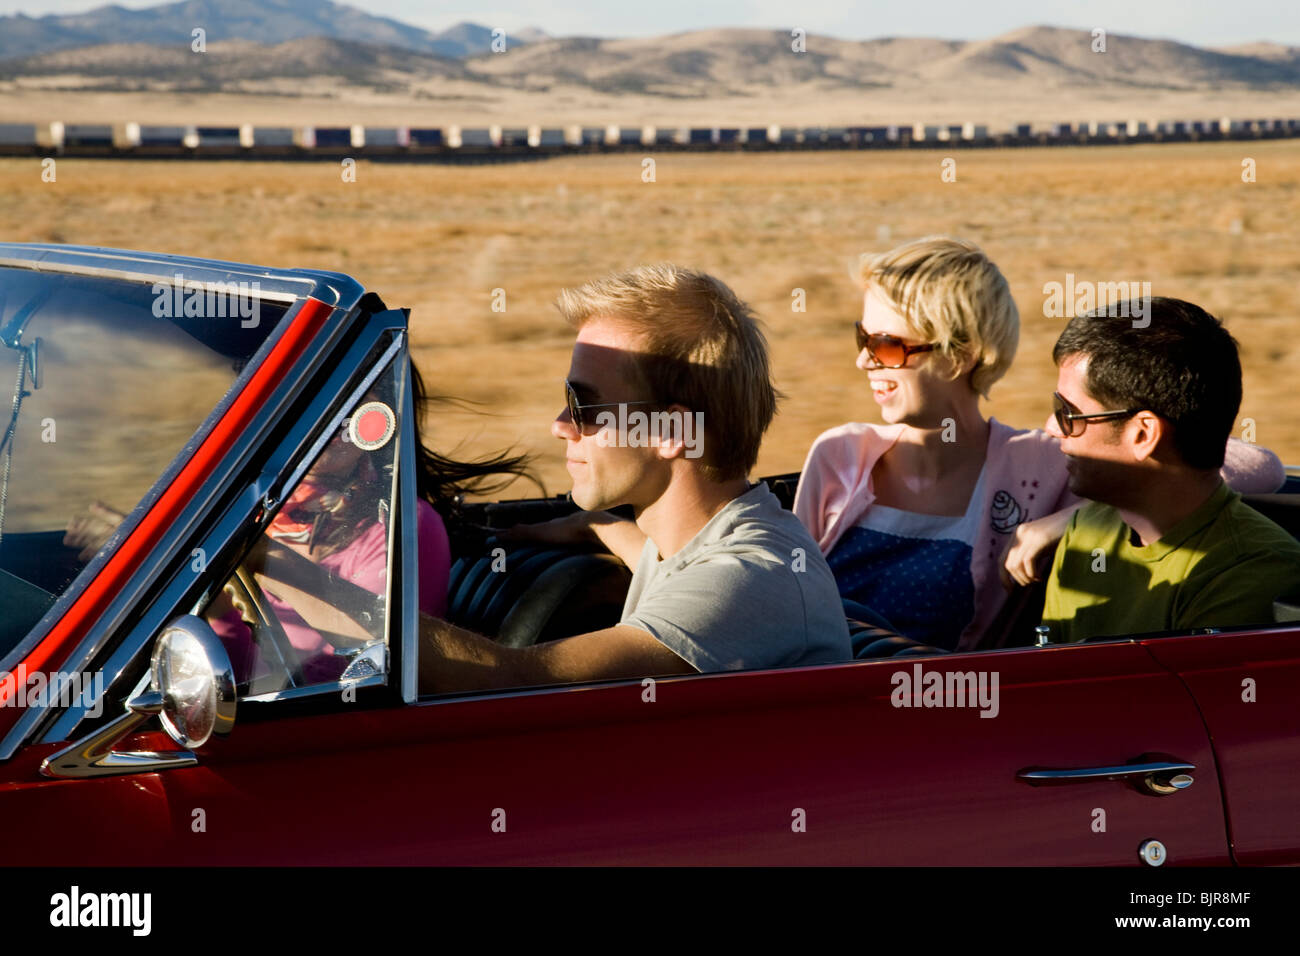 four people on a road trip - Stock Image